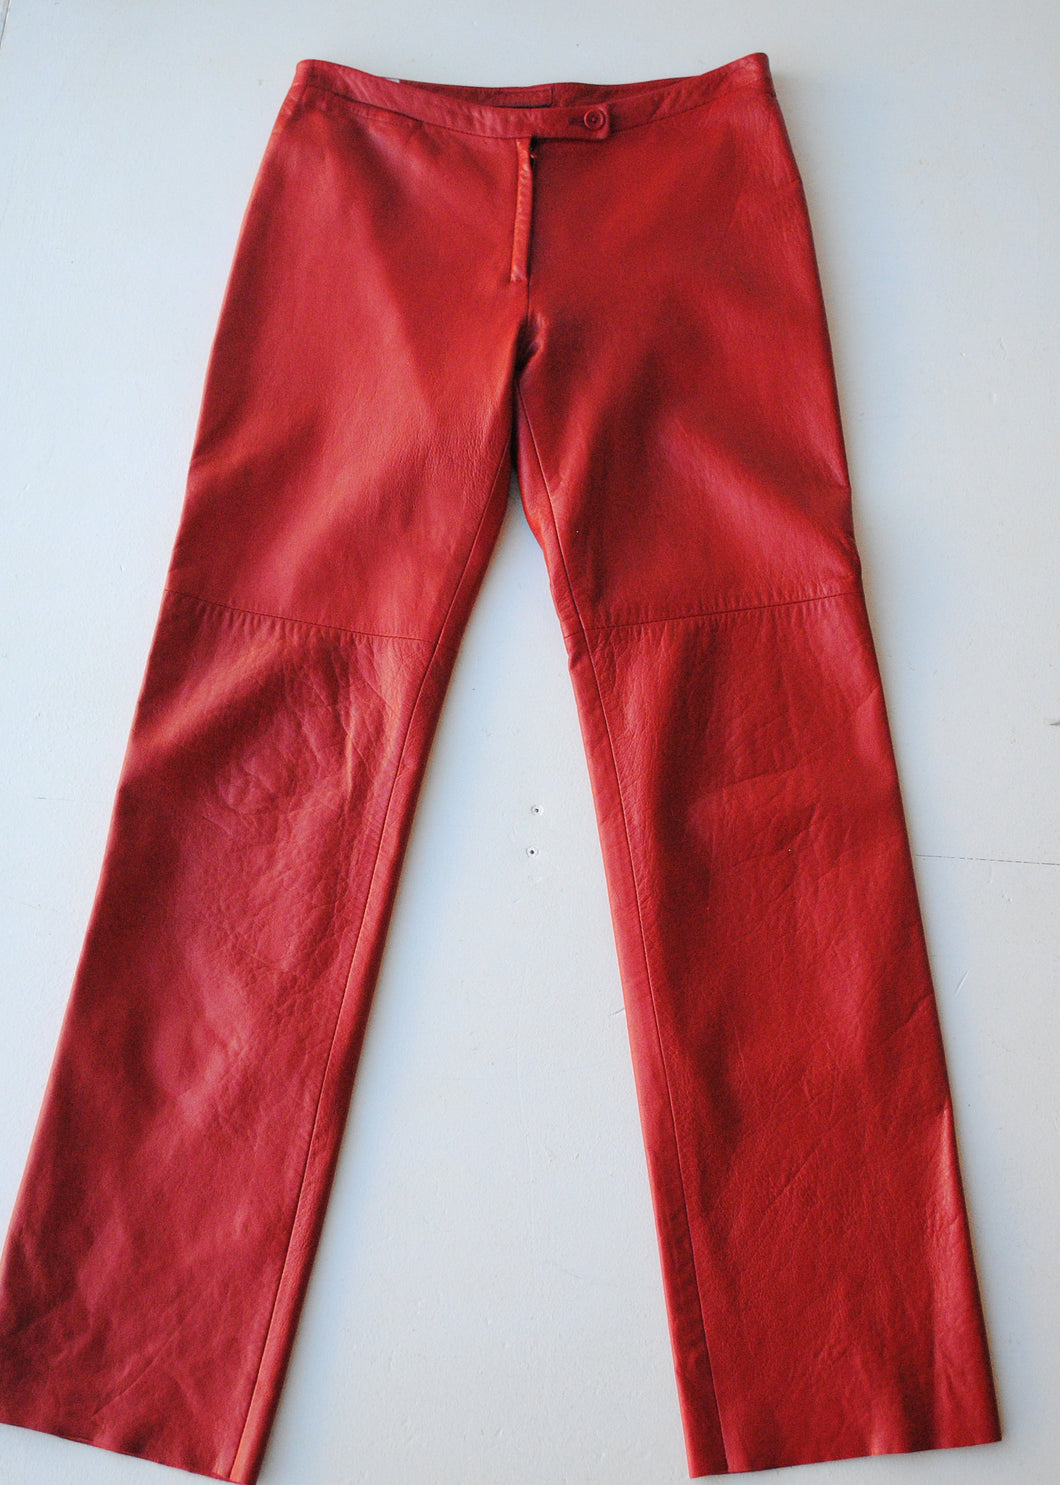 BCBG Red Leather Pants, Size 6